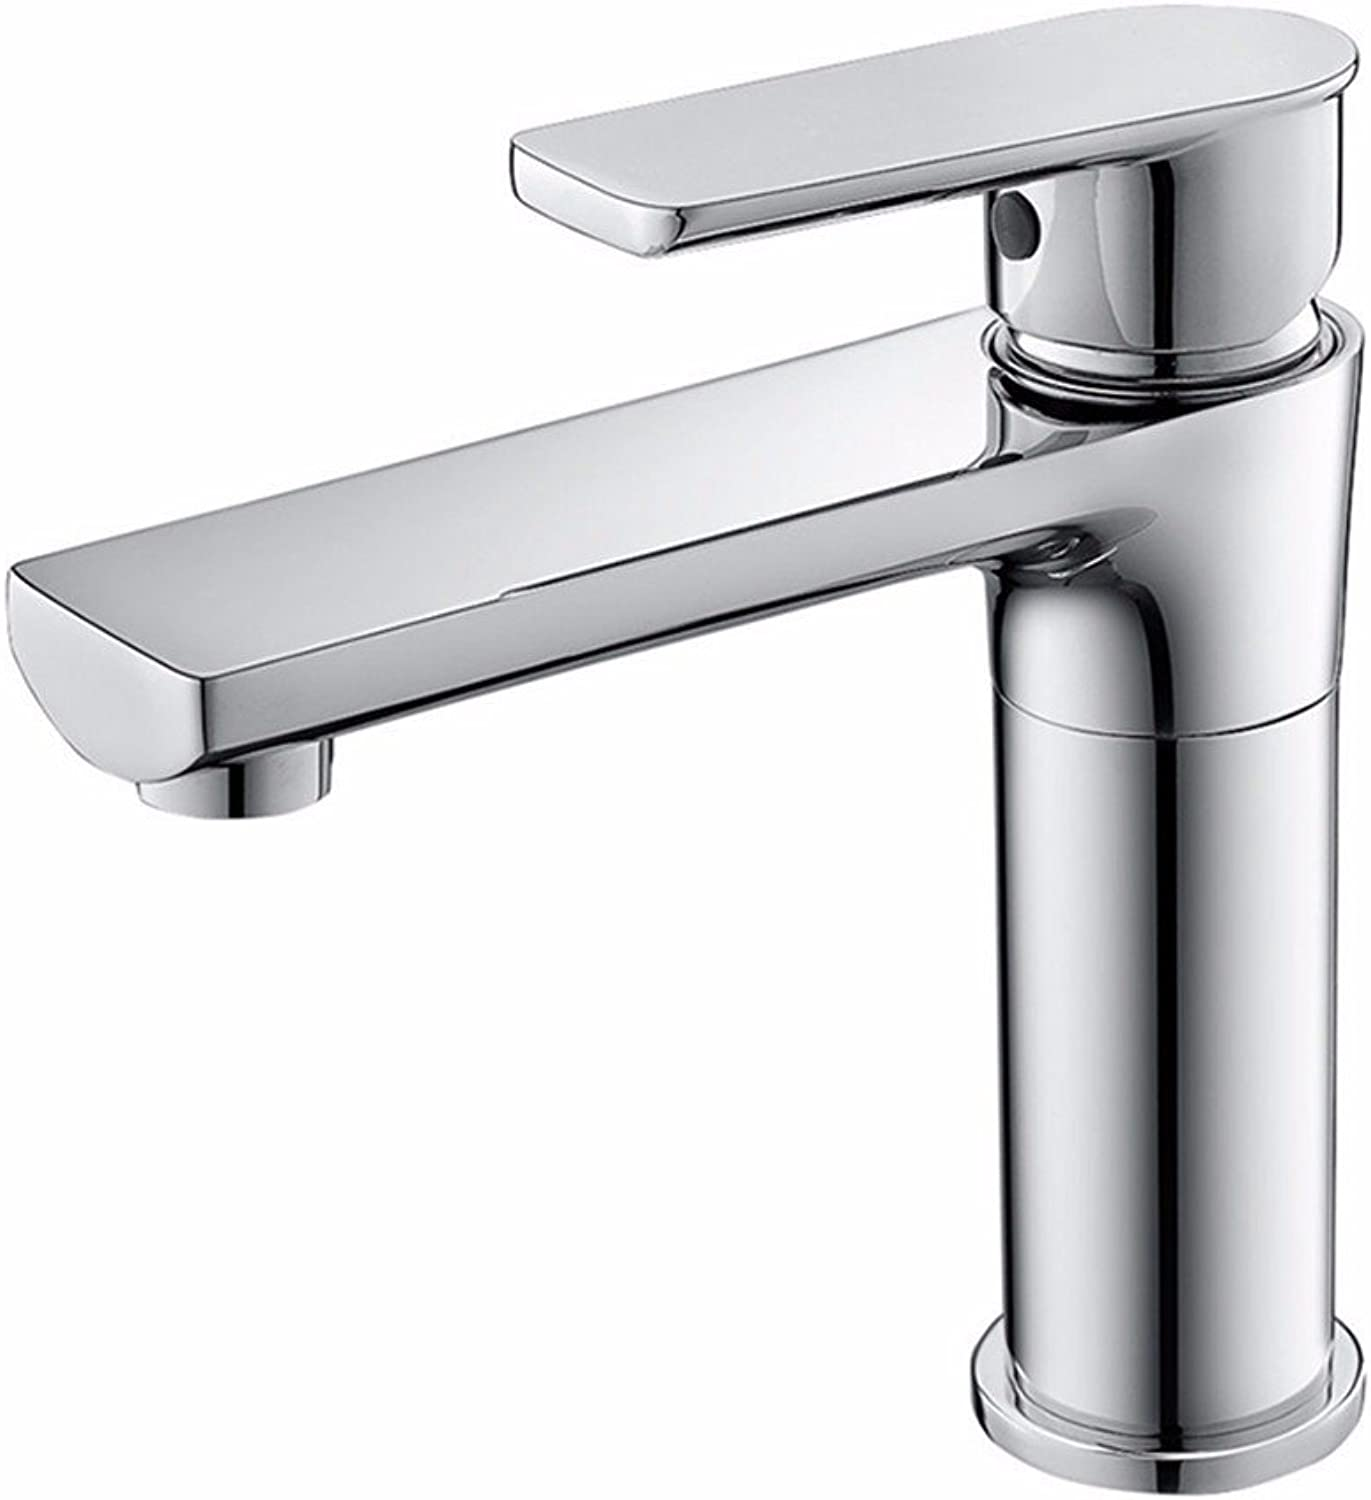 LIANTIAN Single Hole redating Faucet hot and Cold Copper Kitchen Bathroom Vanity wash Basin Basin Mixer Bathroom Sink Taps